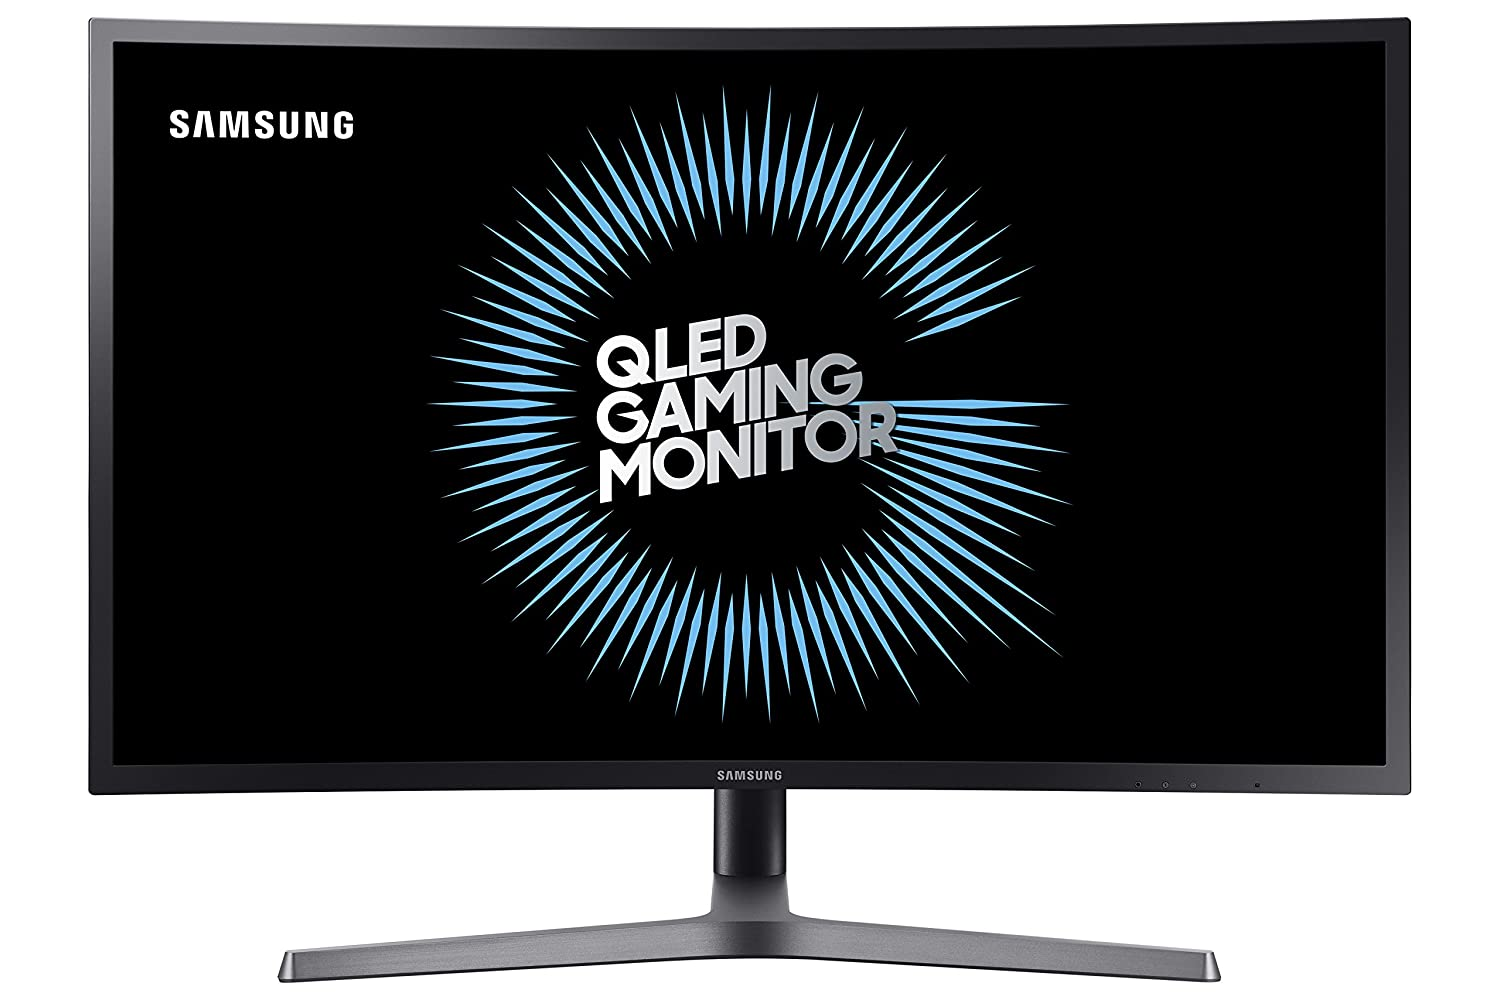 Samsung C27hg70 27 Hdr Qled 144hz 1ms Curved Gaming Monitor With Freesync C27hg70qqn